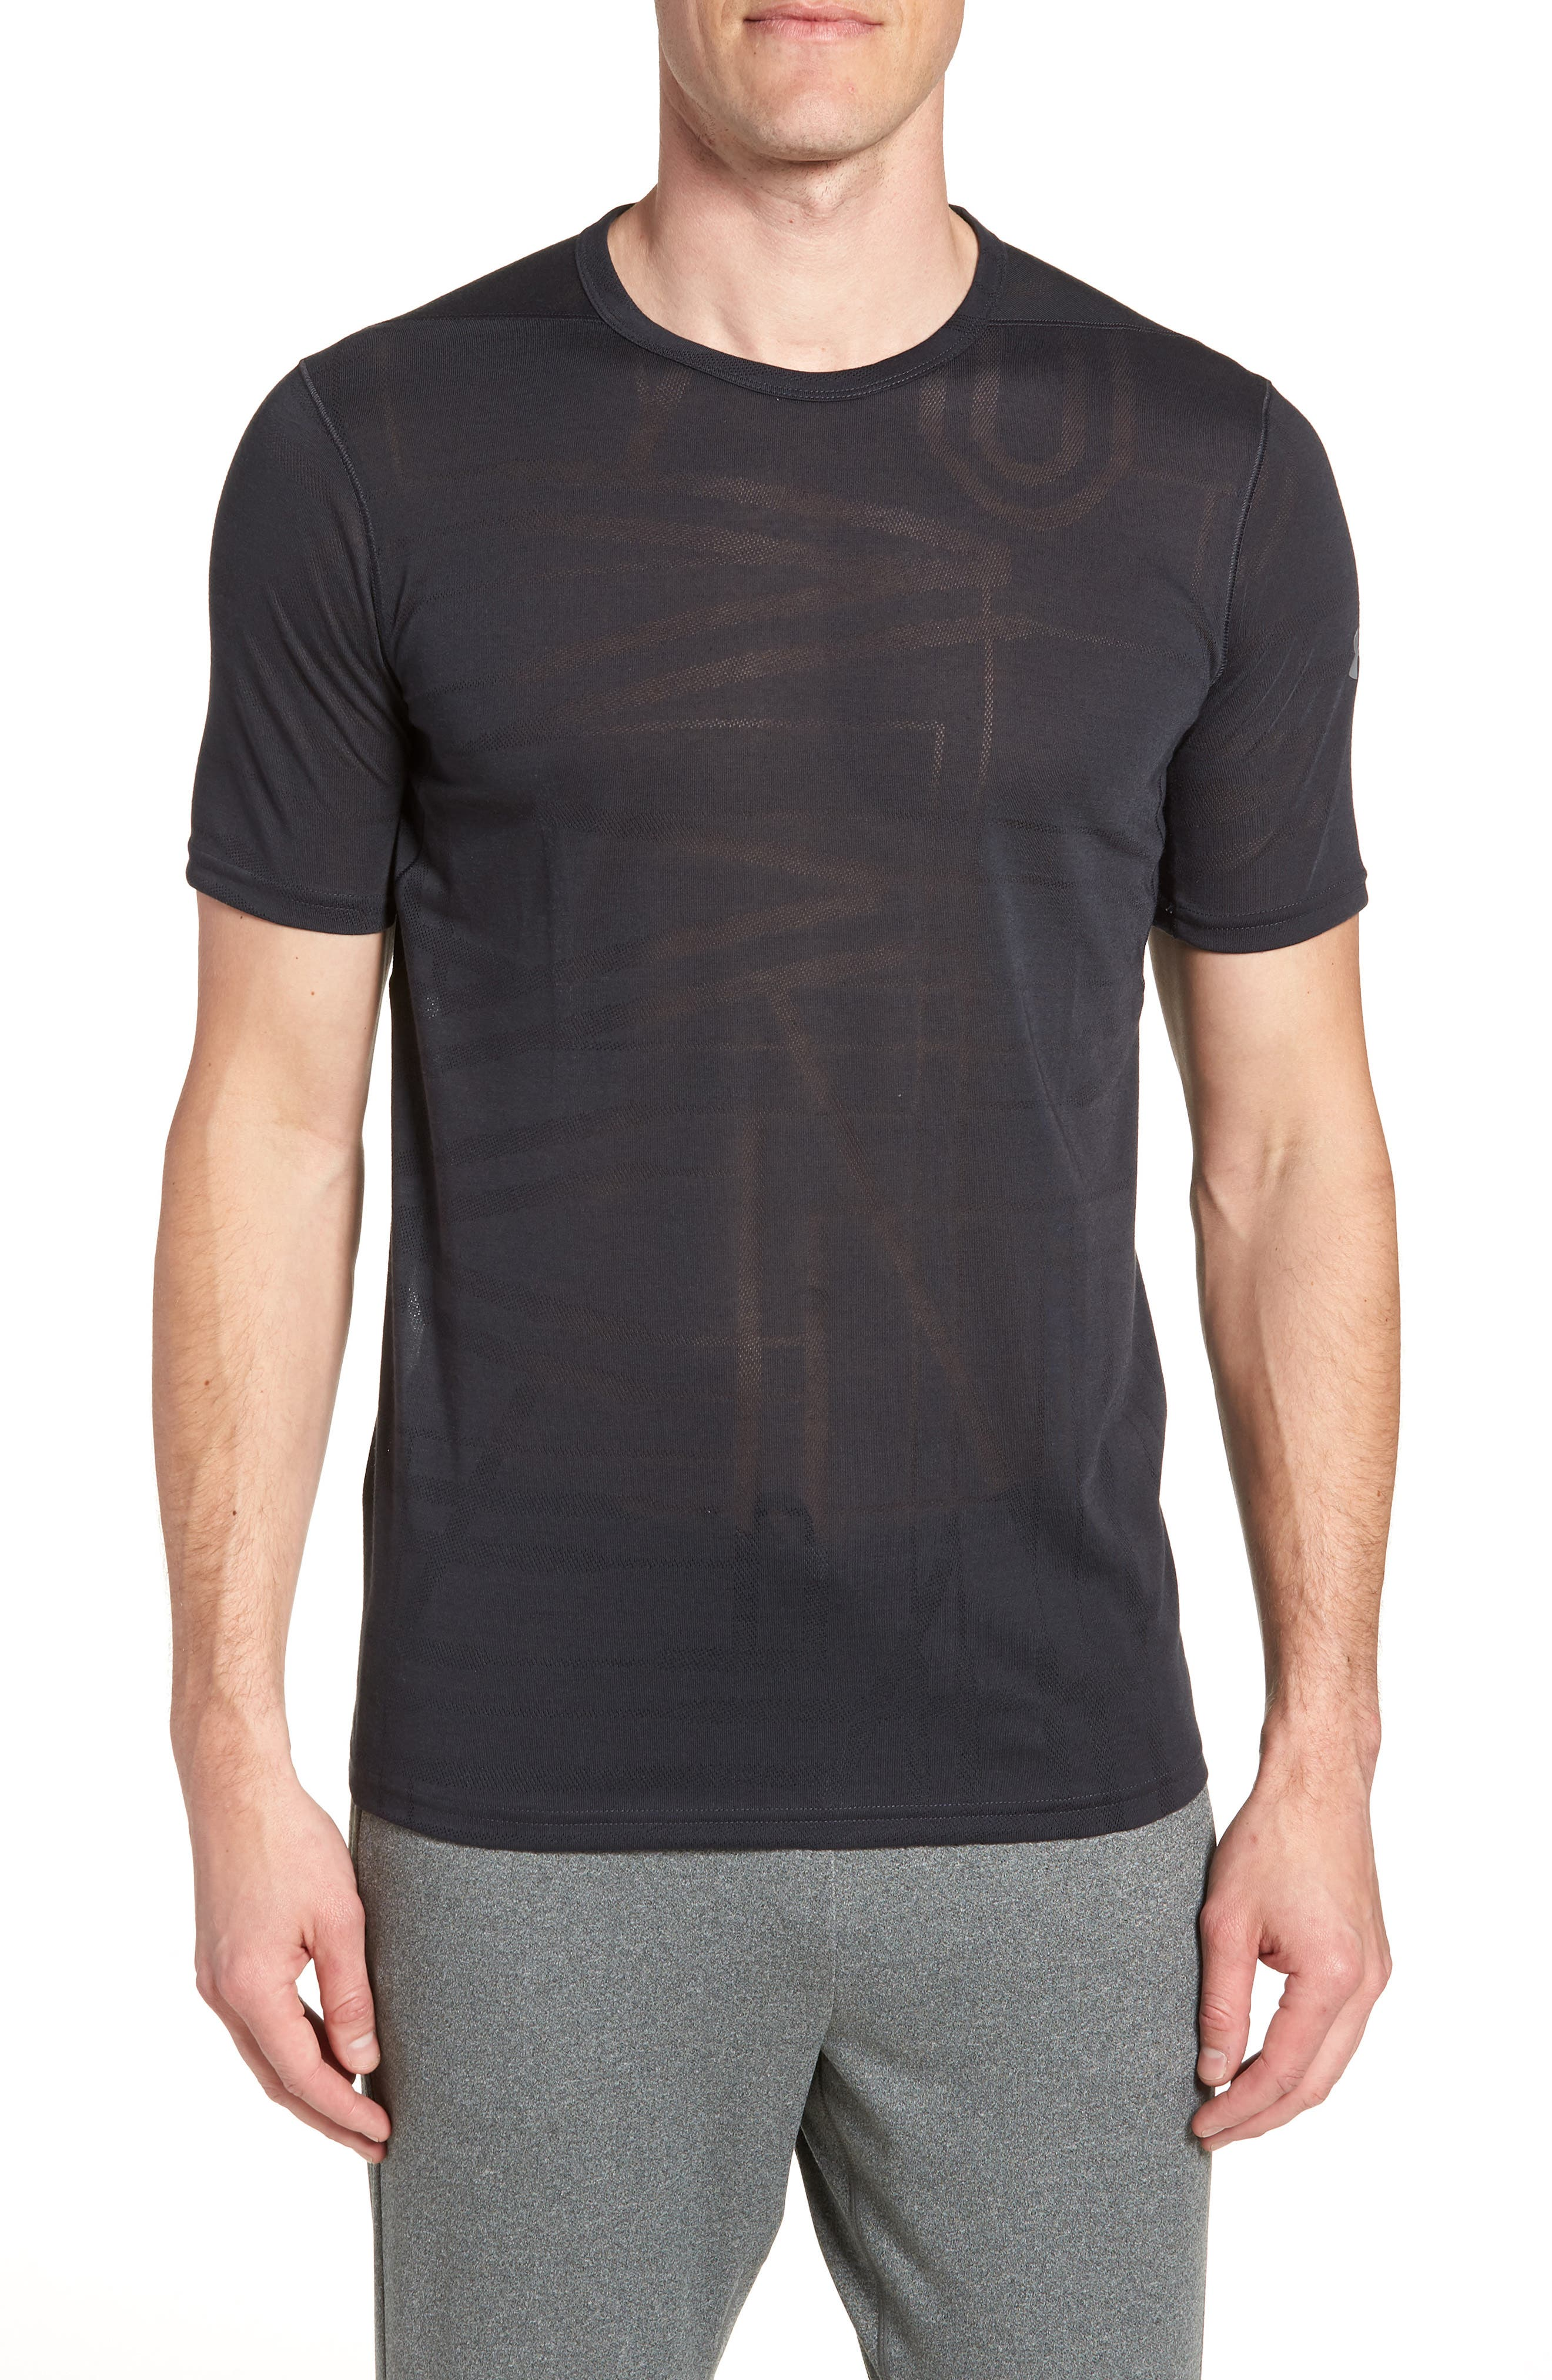 Under Armour Threadborne Elite Crewneck T-Shirt